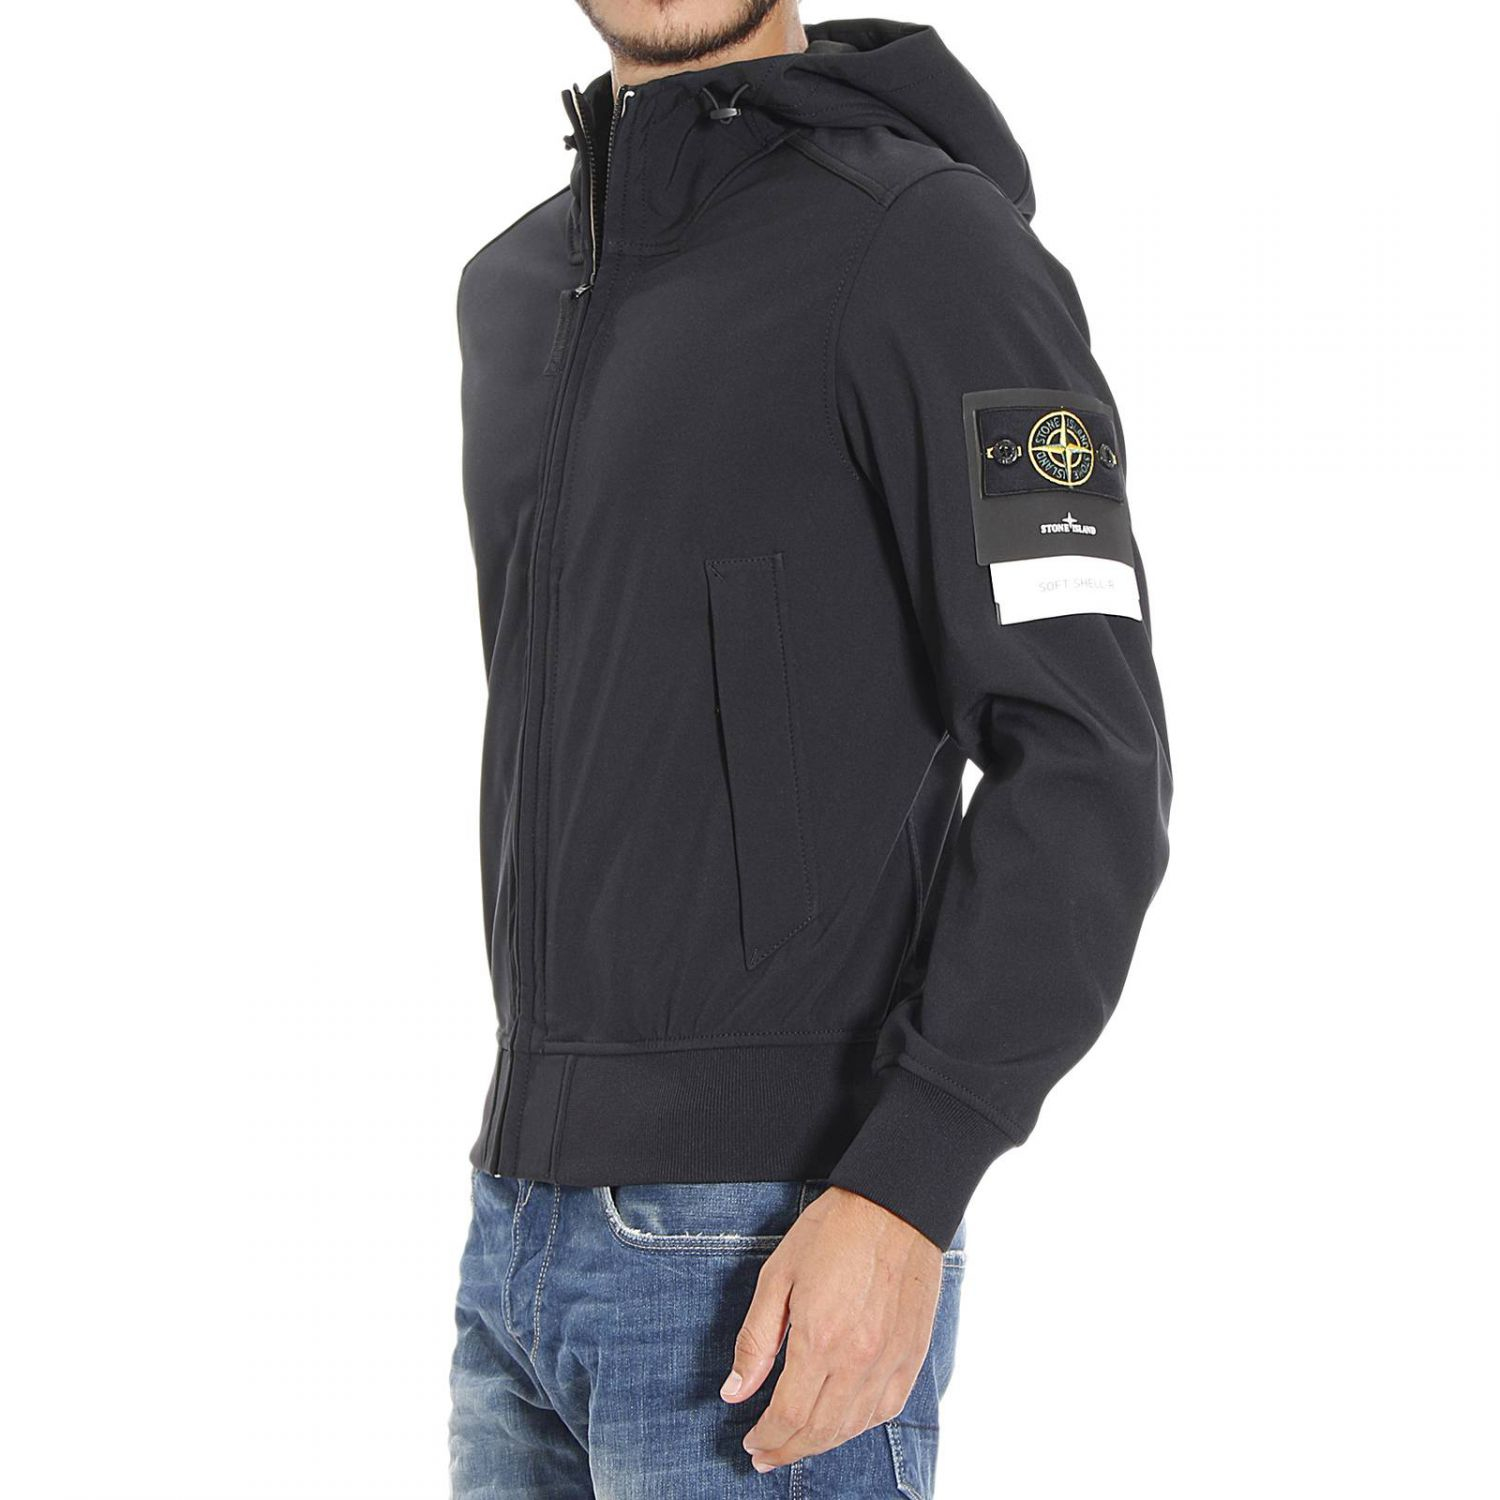 stone island down jacket zip hood zip soft shell 3 strati in black for men lyst. Black Bedroom Furniture Sets. Home Design Ideas